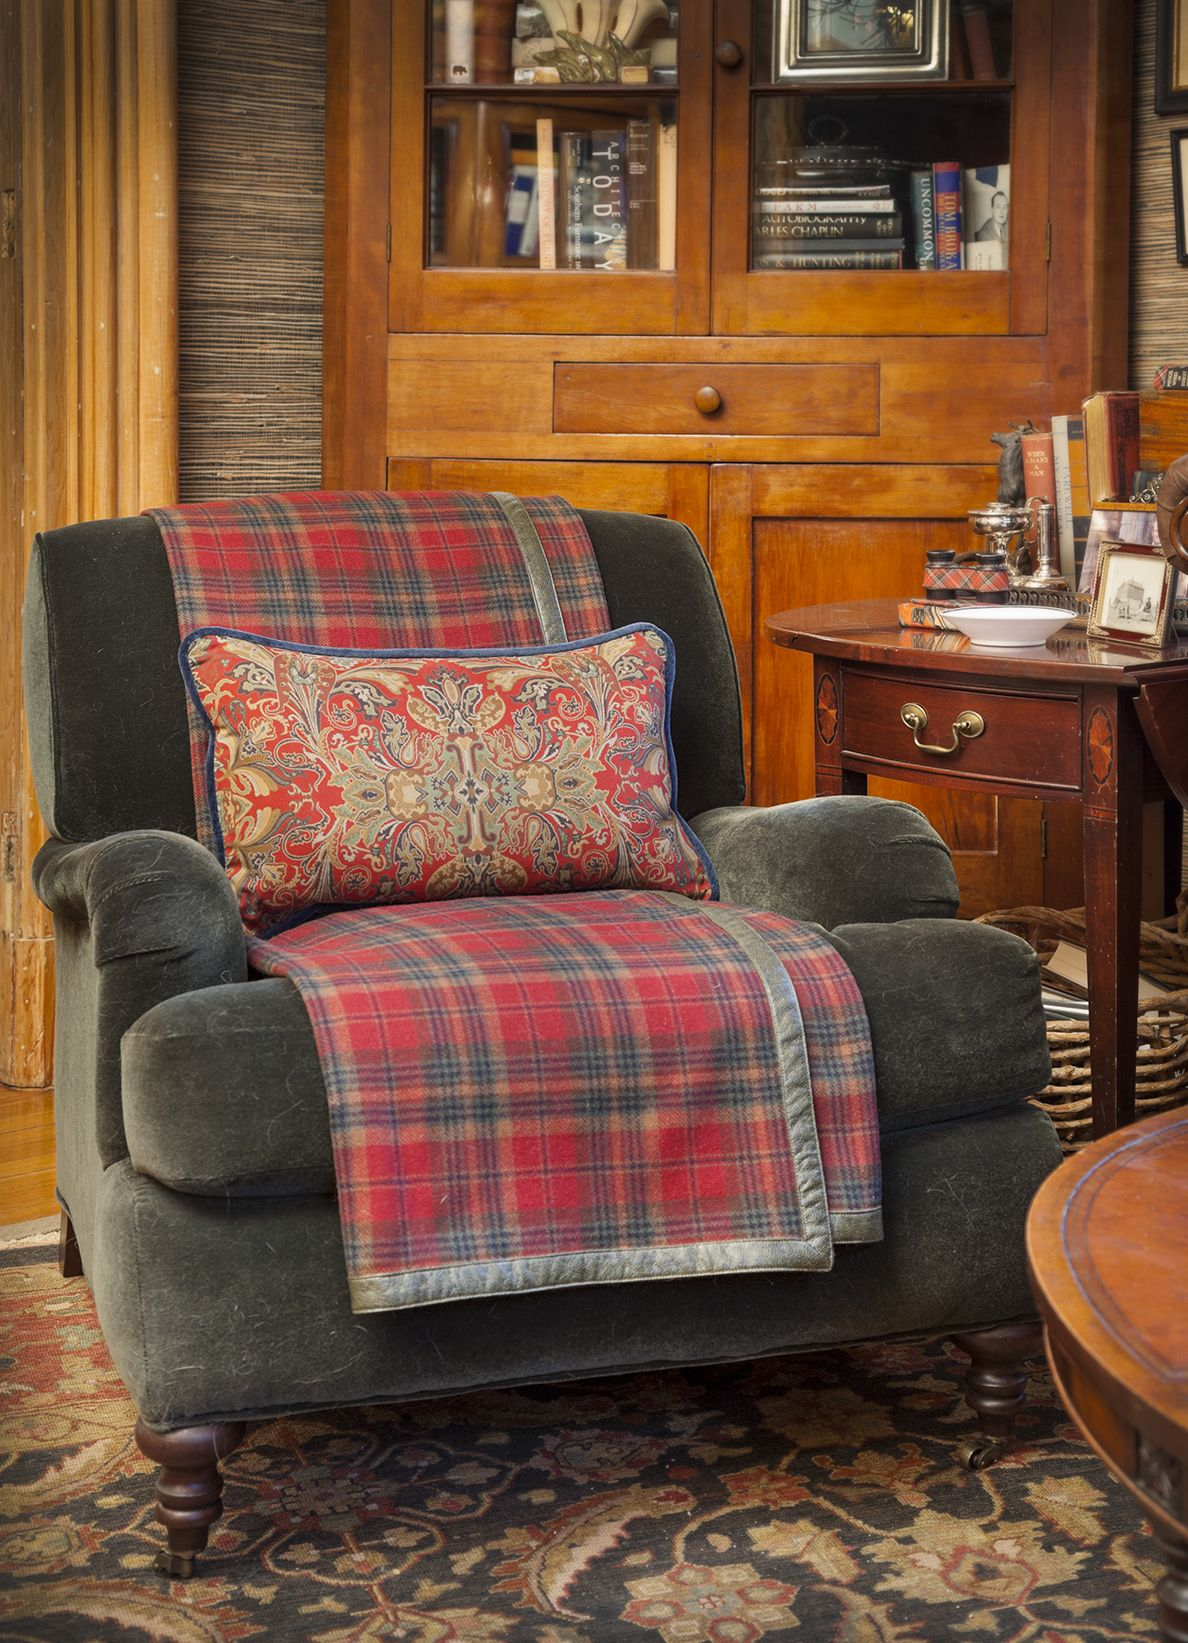 Green Chair With Plaid Throw Blanked And Paisley Pillow